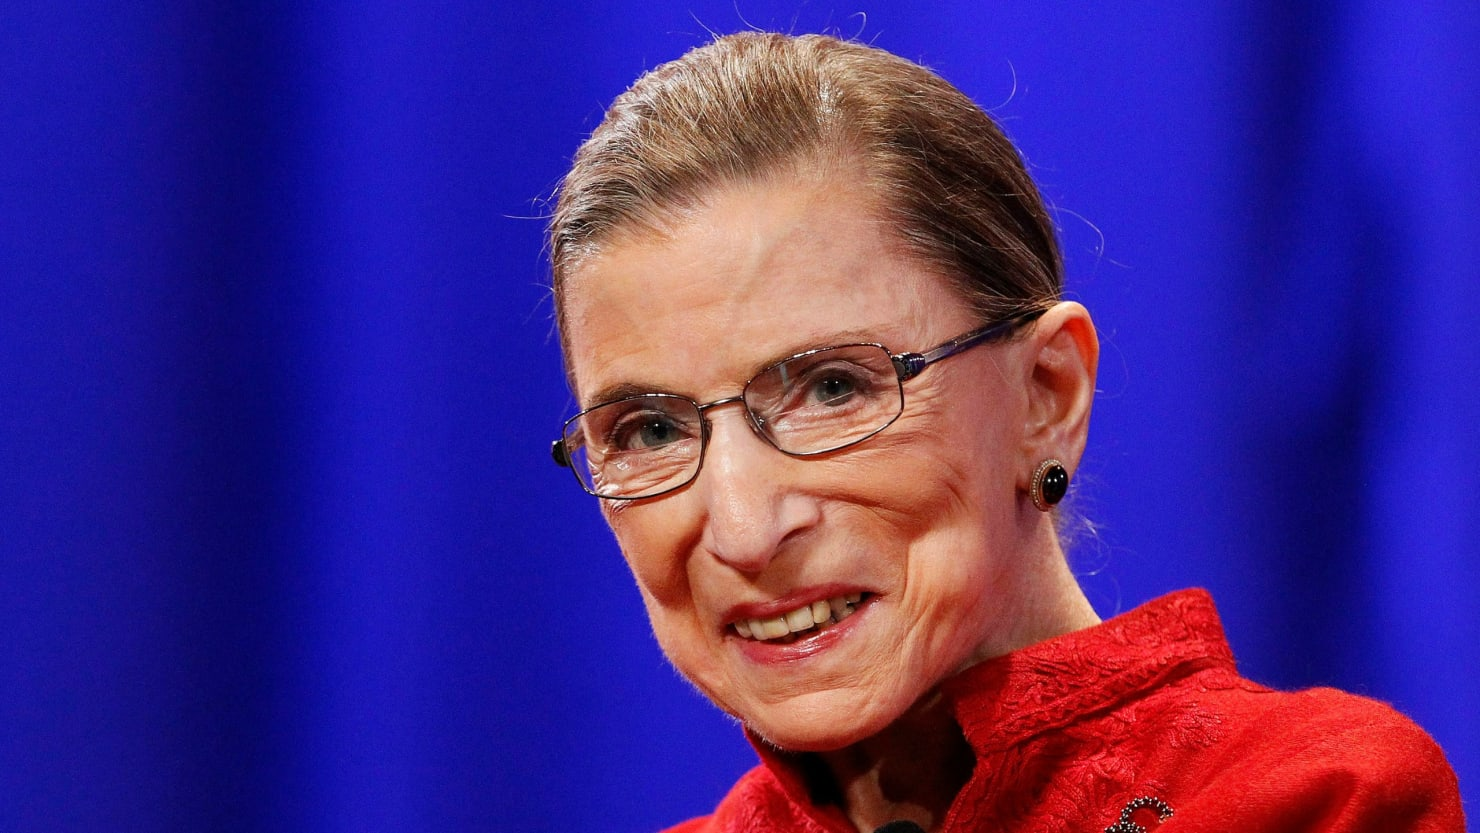 Ruth Bader Ginsburg Shows 'No Evidence' of Cancer After Surgery, Supreme Court says